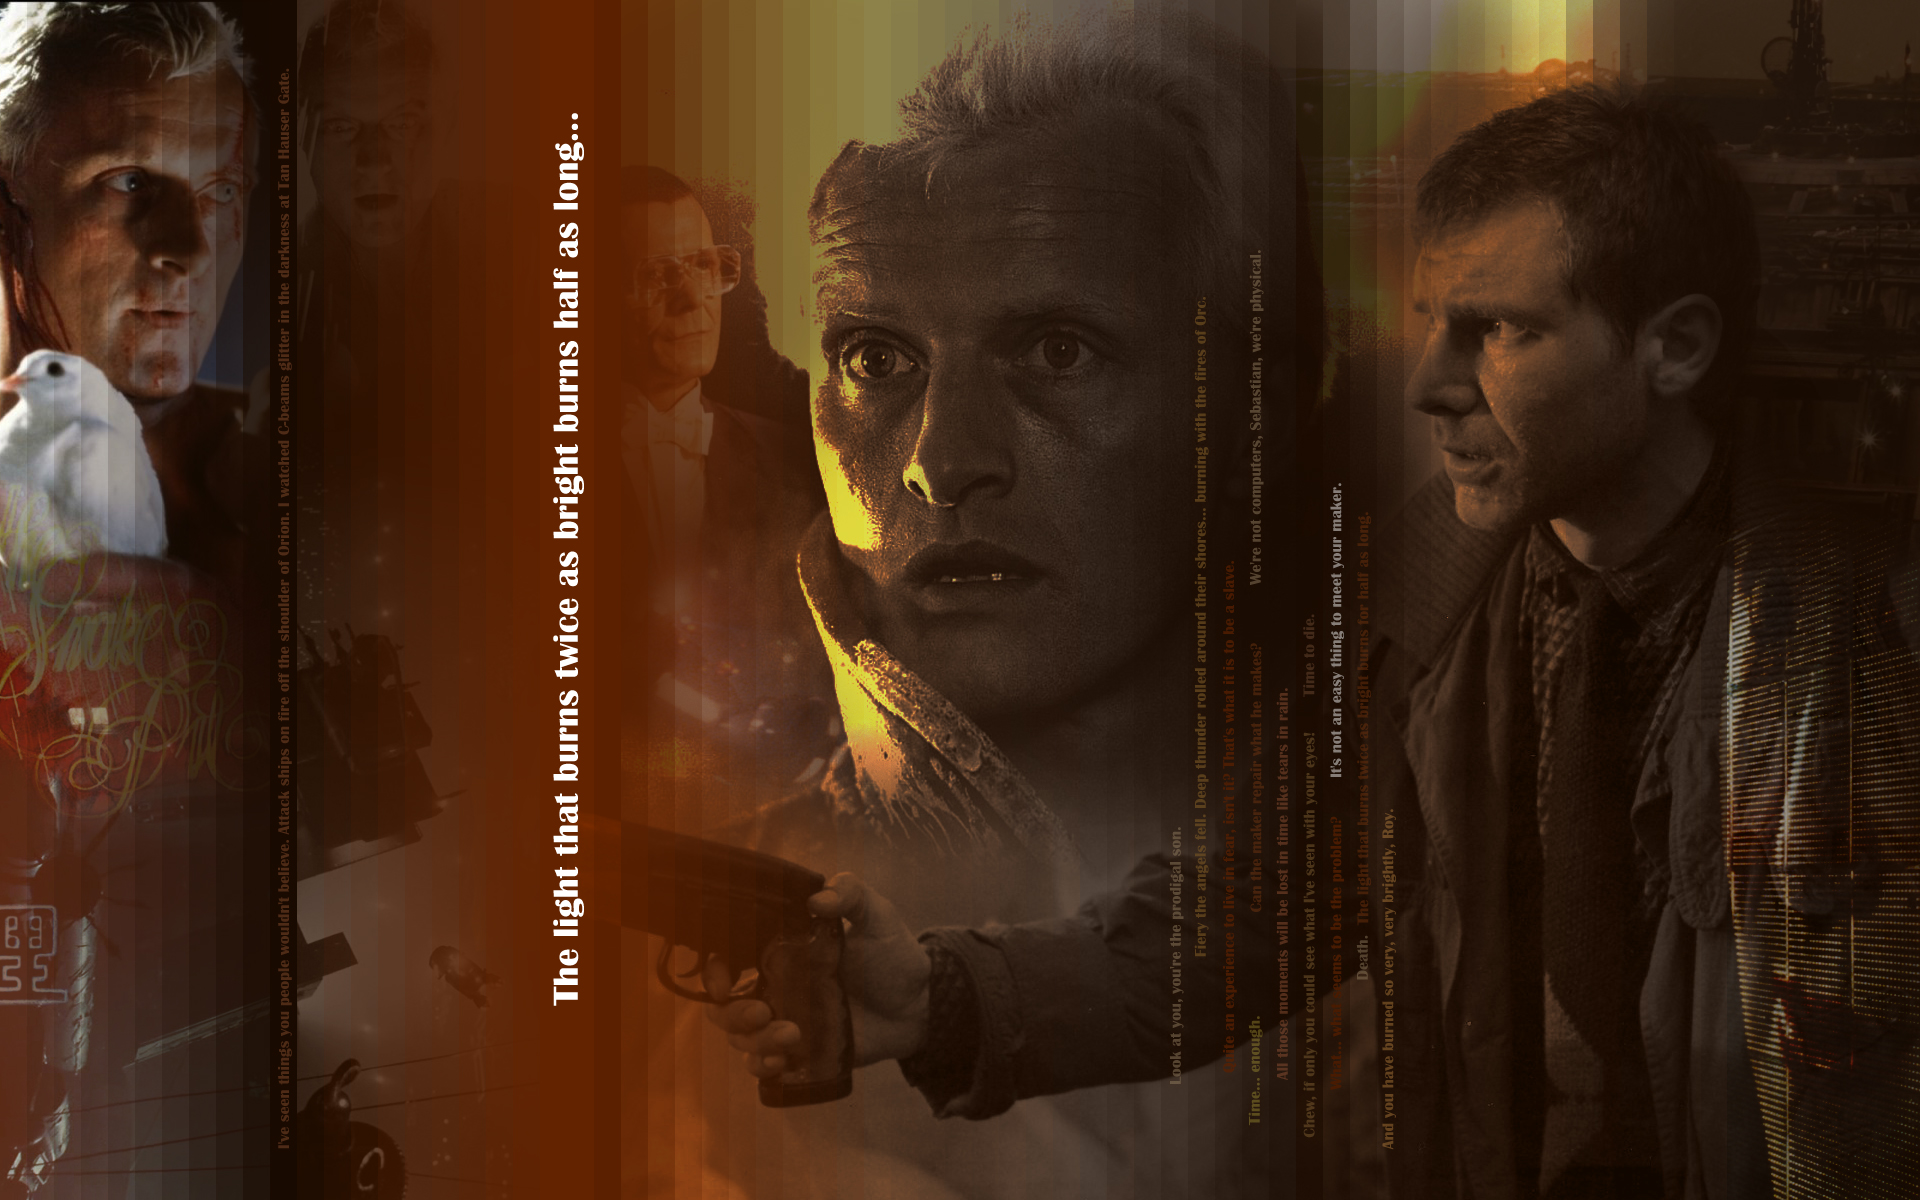 Blade Runner imagens Twice as bright half as long HD wallpaper 1920x1200